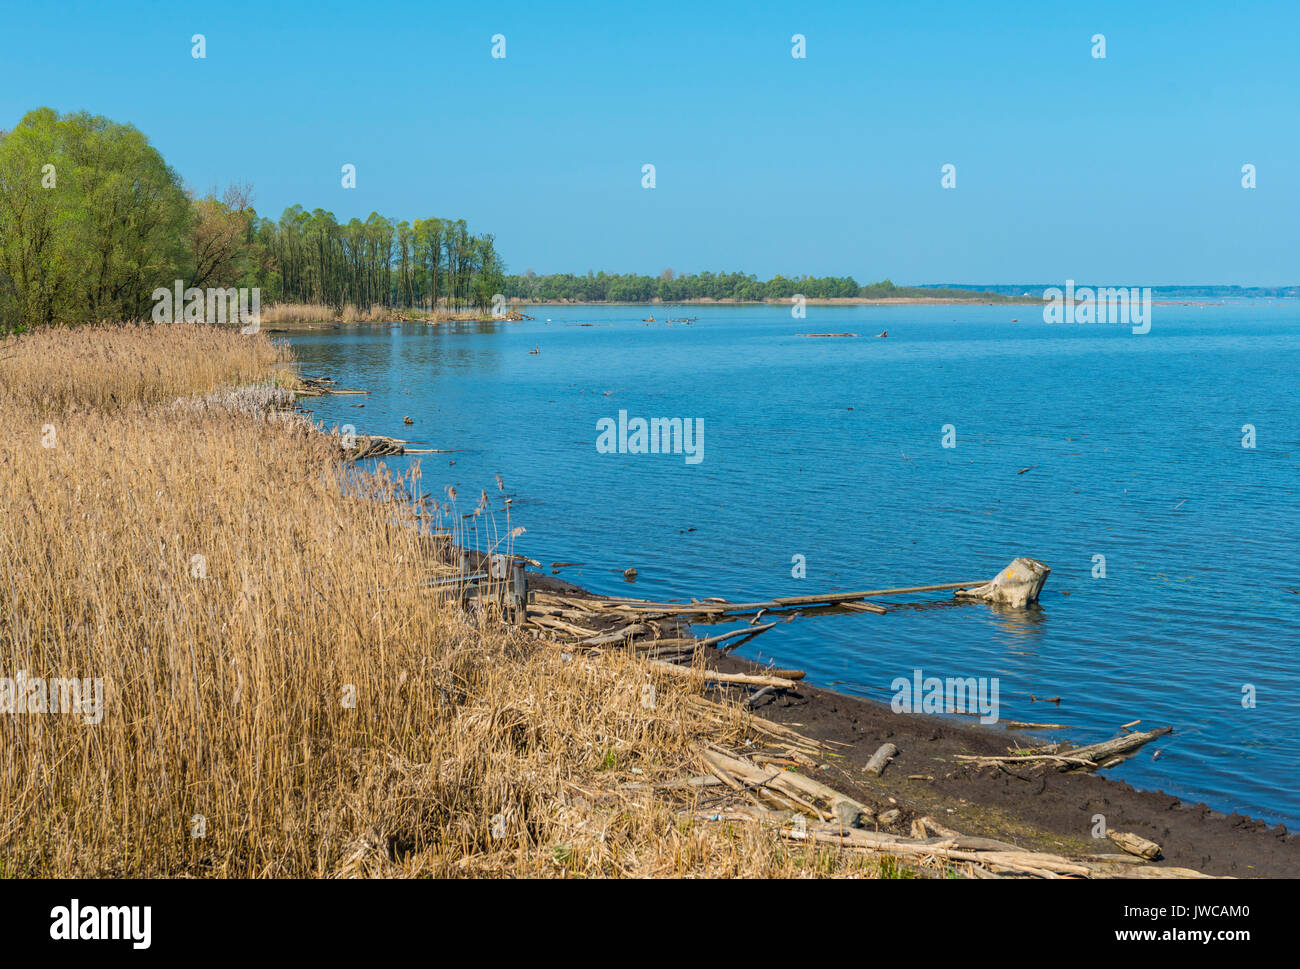 Mmouth of the Tyrolean Ache or Tyroler Achen, Chiemsee, Upper Bavaria, Bavaria, Germany - Stock Image